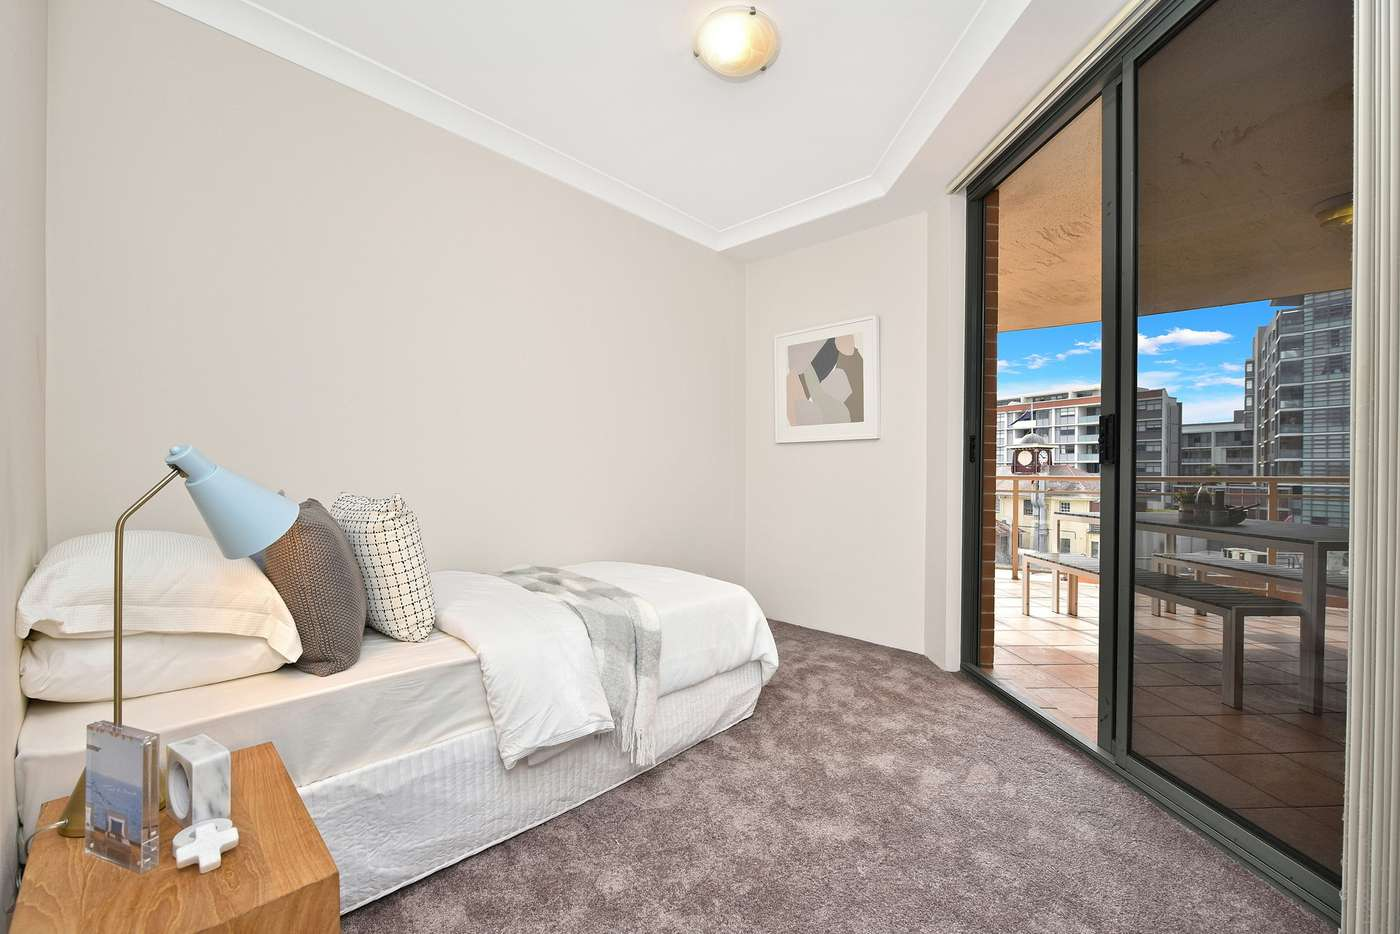 Fifth view of Homely apartment listing, 3A06/767 Anzac Parade, Maroubra NSW 2035